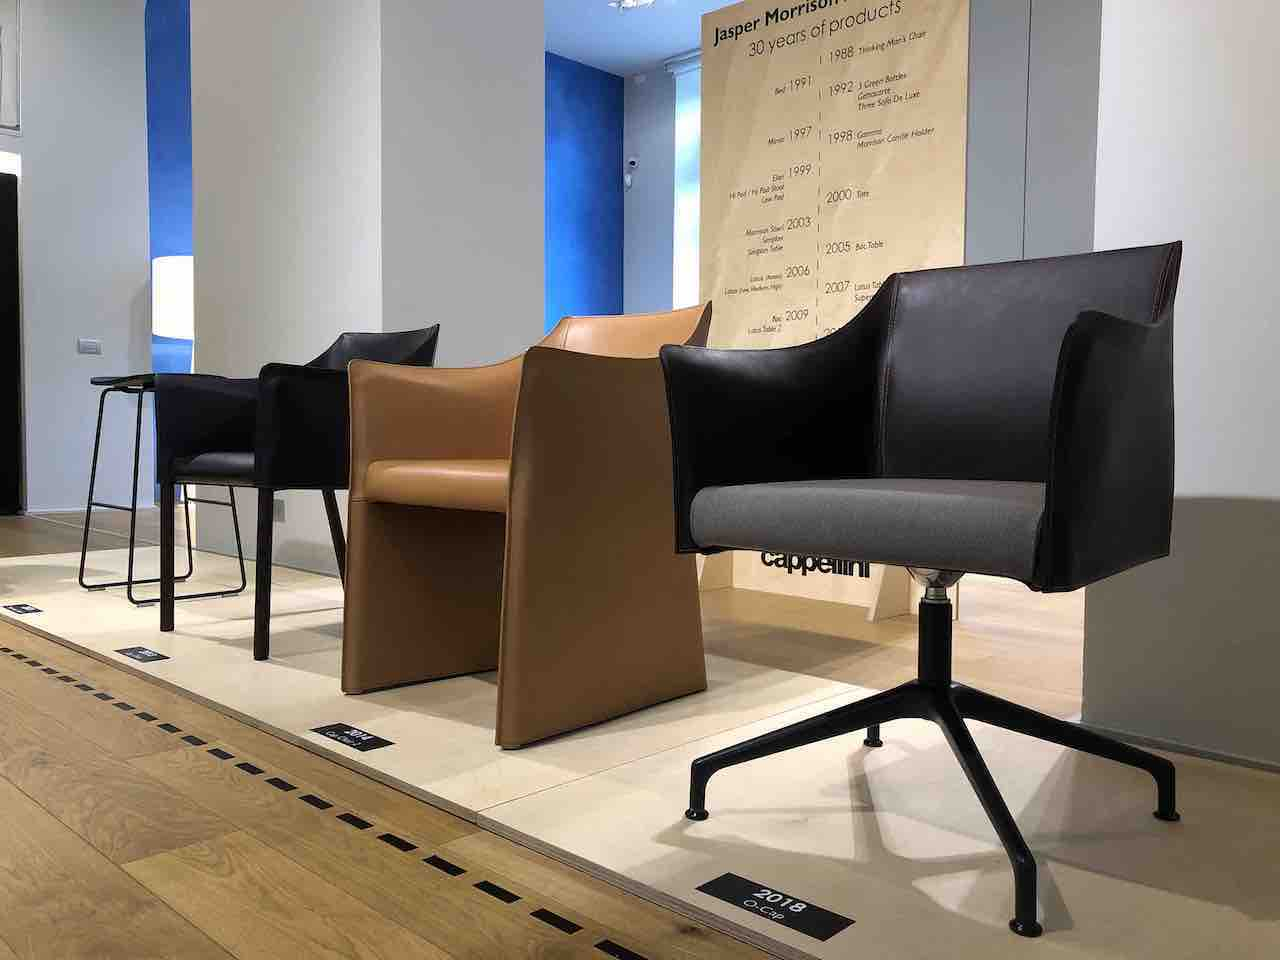 """Jasper Morrison – Cappellini, 30 years of successfull products"". Cappellini Point, Milan, 2018"